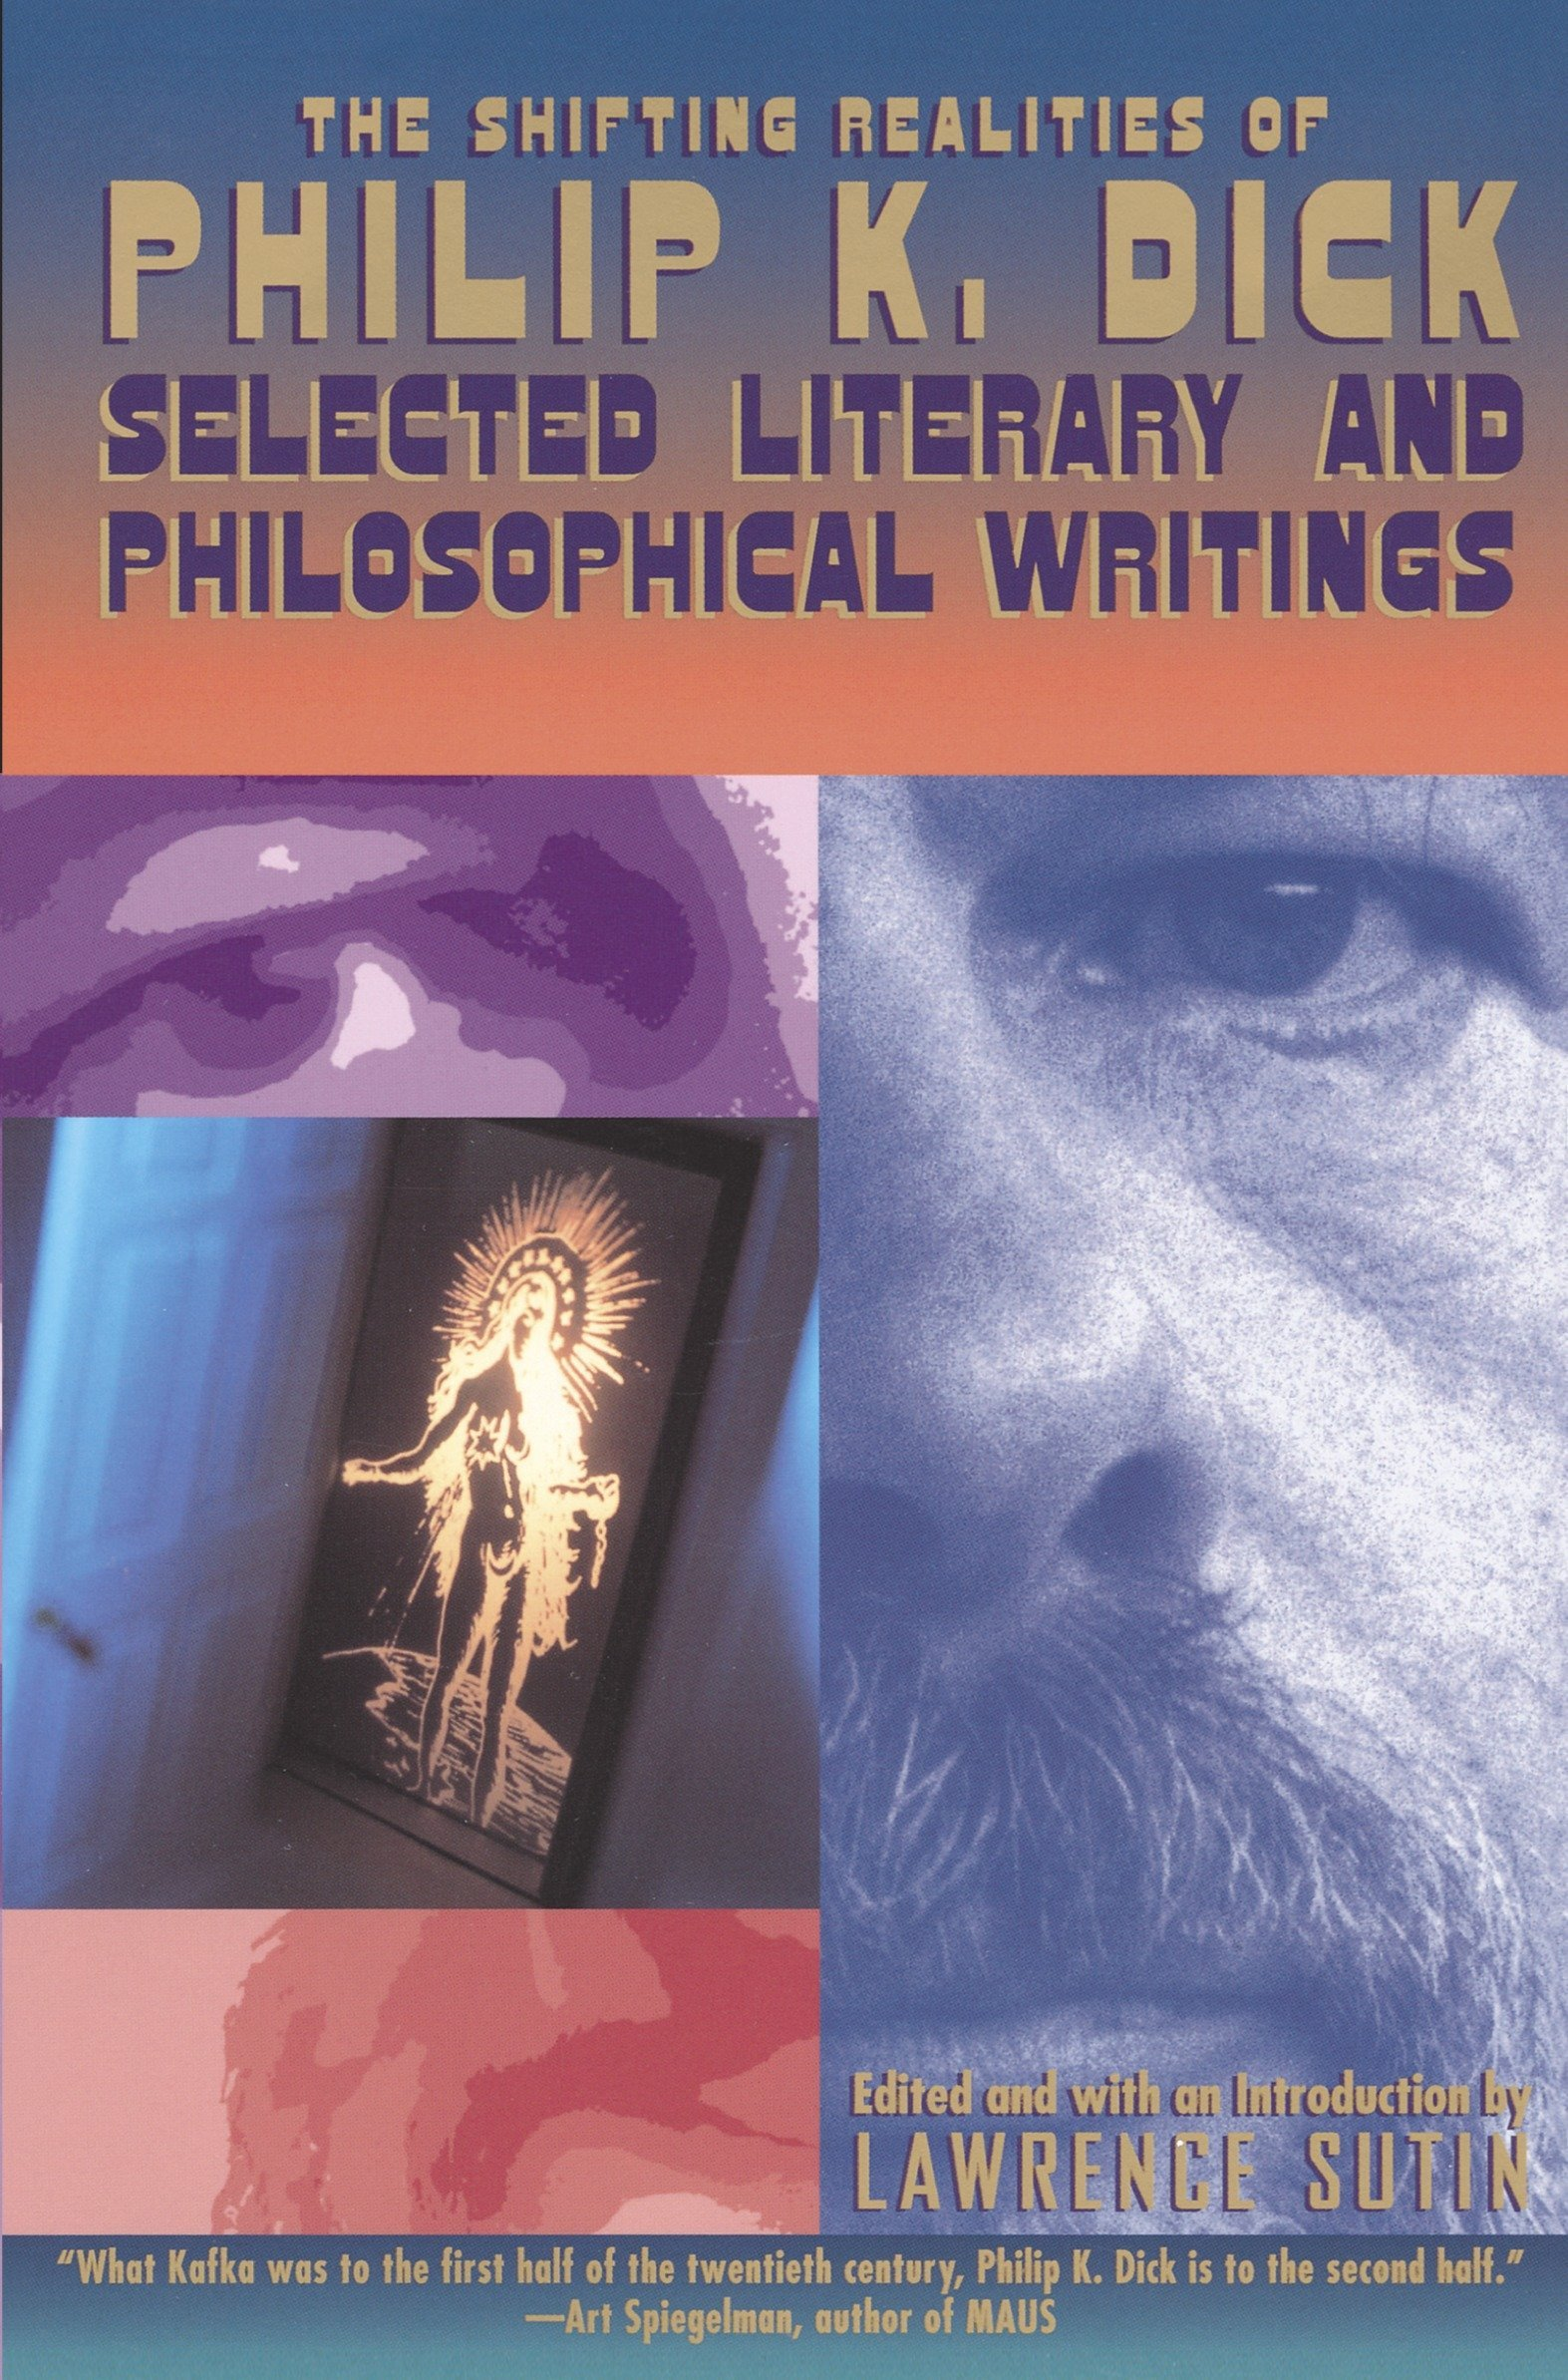 the-shifting-realities-of-philip-k-dick-selected-literary-and-philosophical-writings